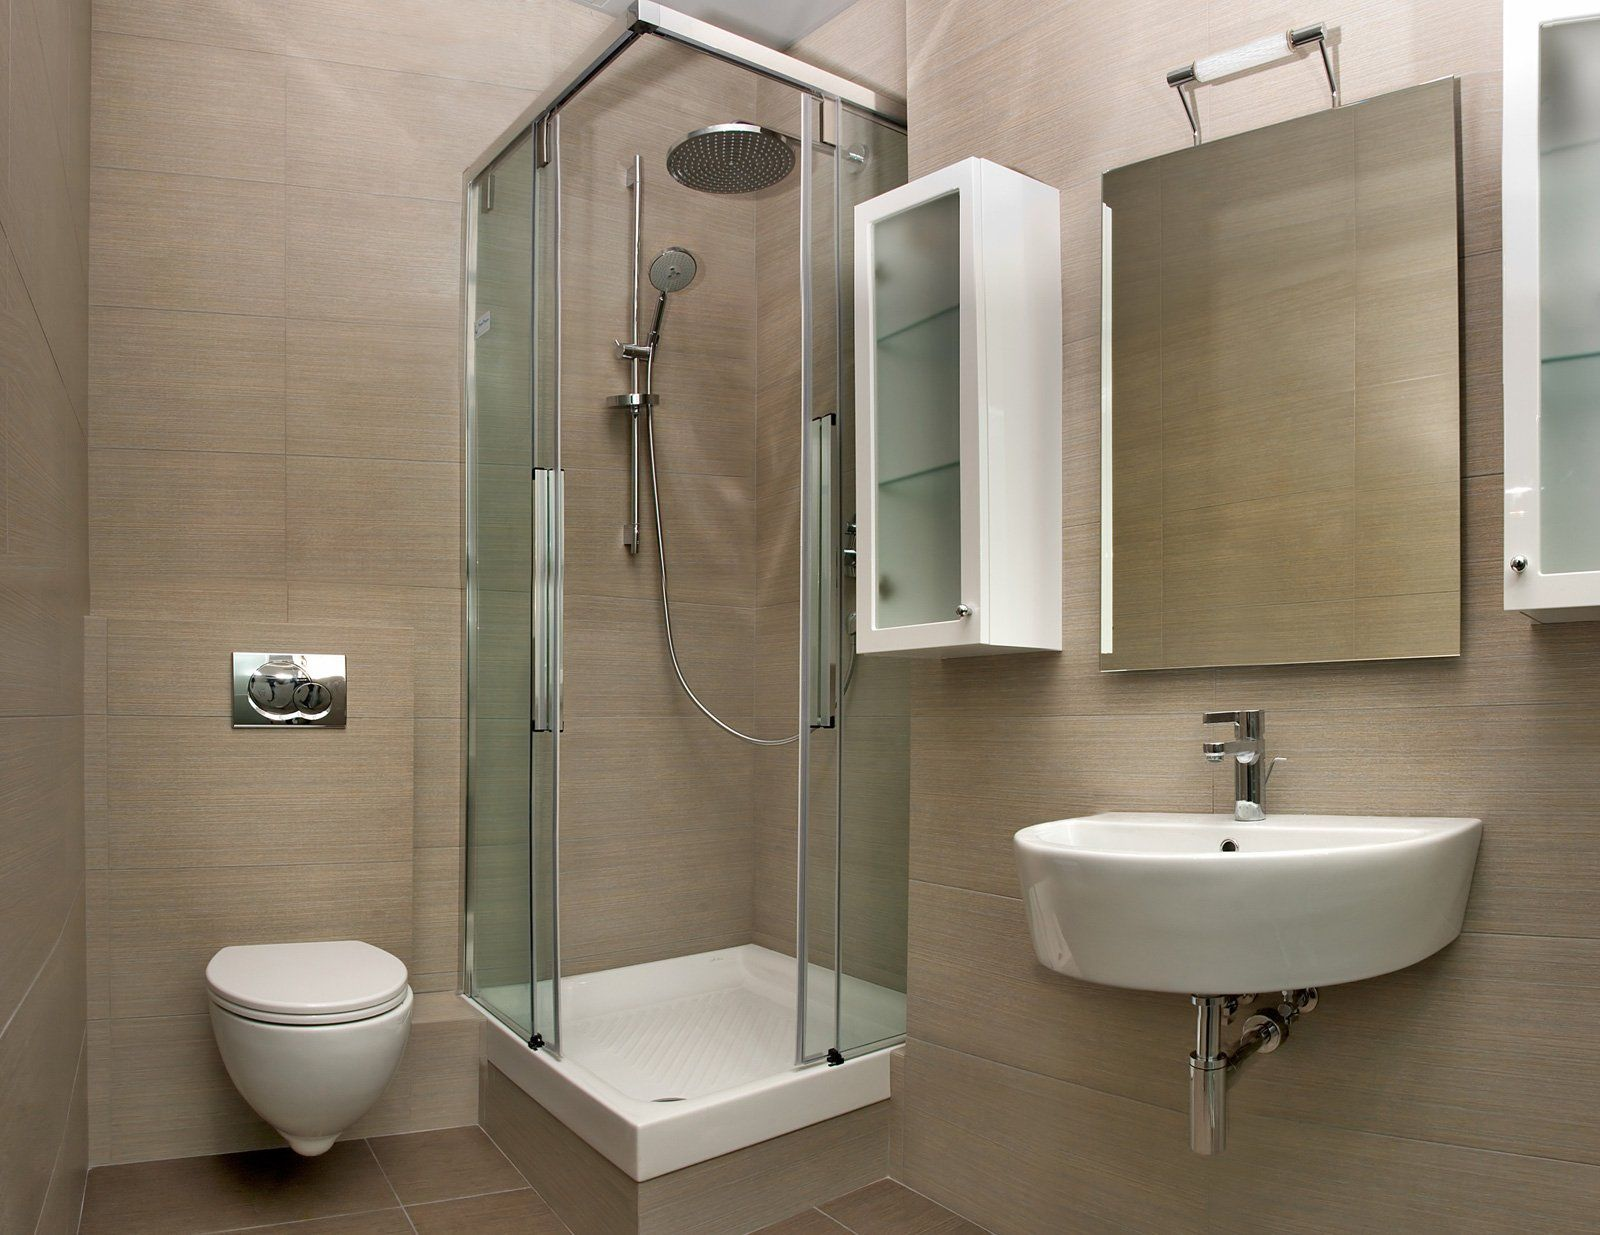 Bathroom Inspiring Small Space Bathroom With Corner Shower Stalls And Modern Toilet Also Sin Small Bathroom With Shower Simple Bathroom Modern Small Bathrooms